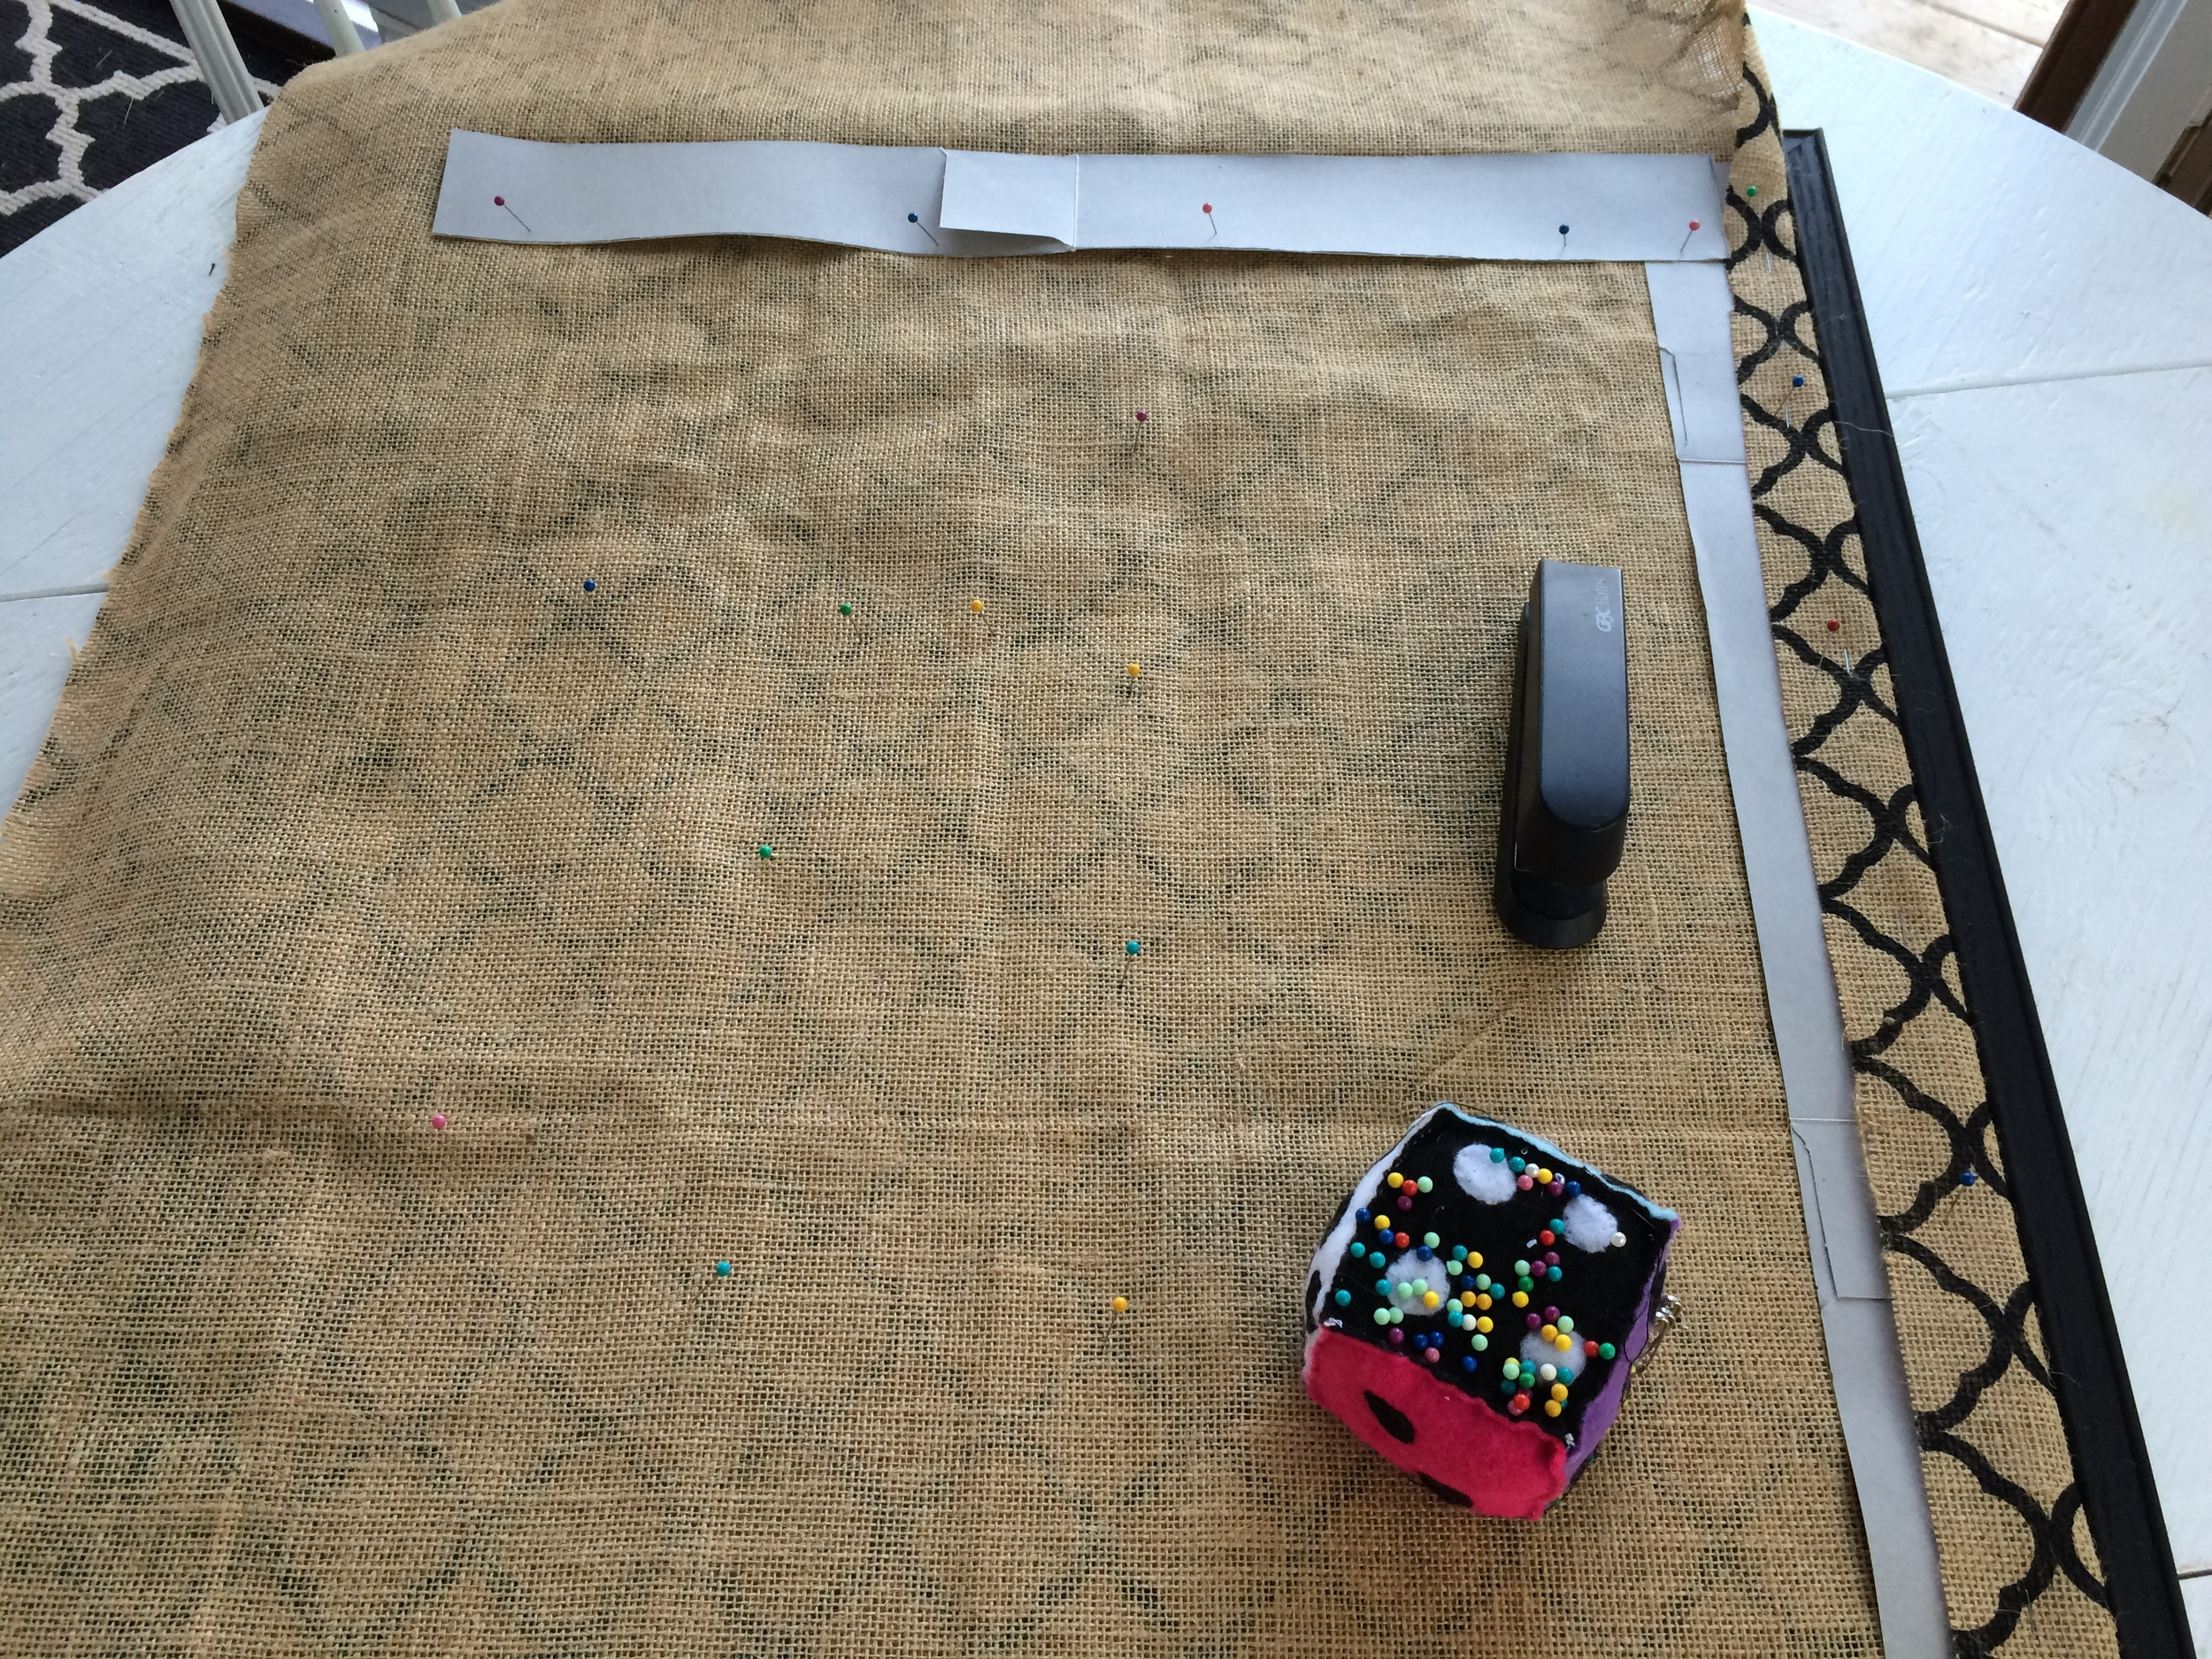 Cardboard strips with burlap folded and stapled to them.